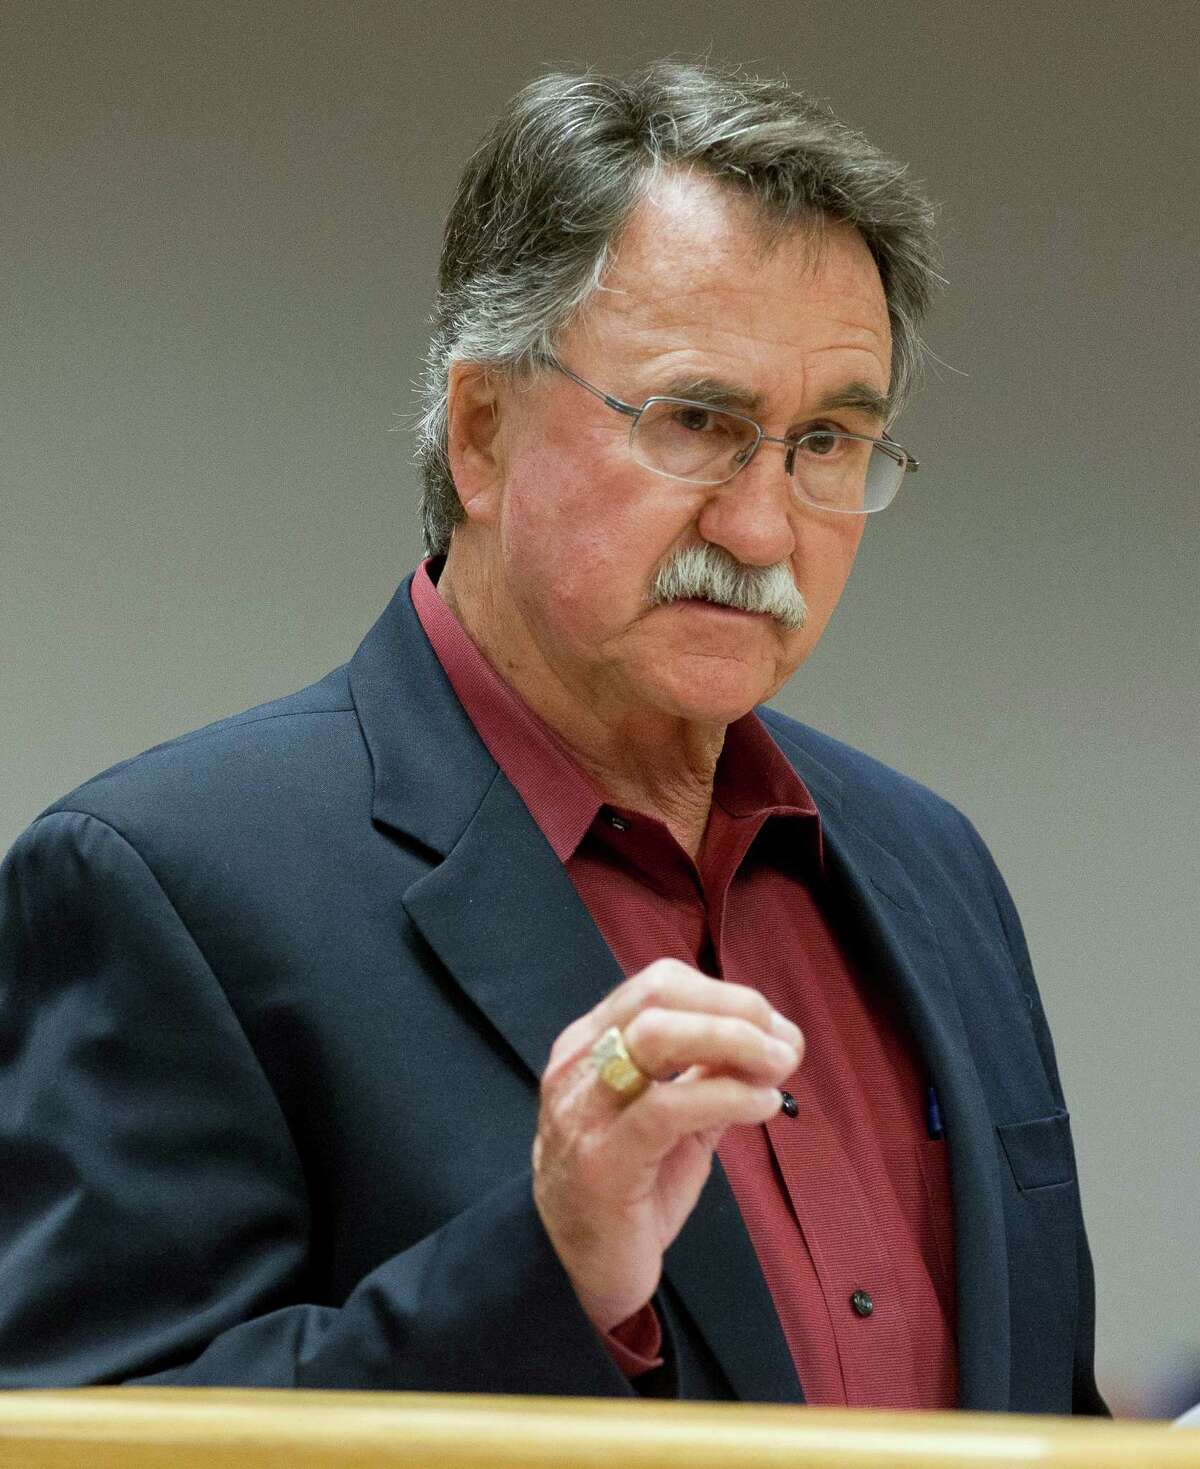 Former Conroe Mayor Webb Melder speaks during a special session to appoint a representative for the Lone Star Groundwater Conservation District board during the Montgomery County Commissioners Court meeting Tuesday, Feb. 14, 2017, in Conroe.